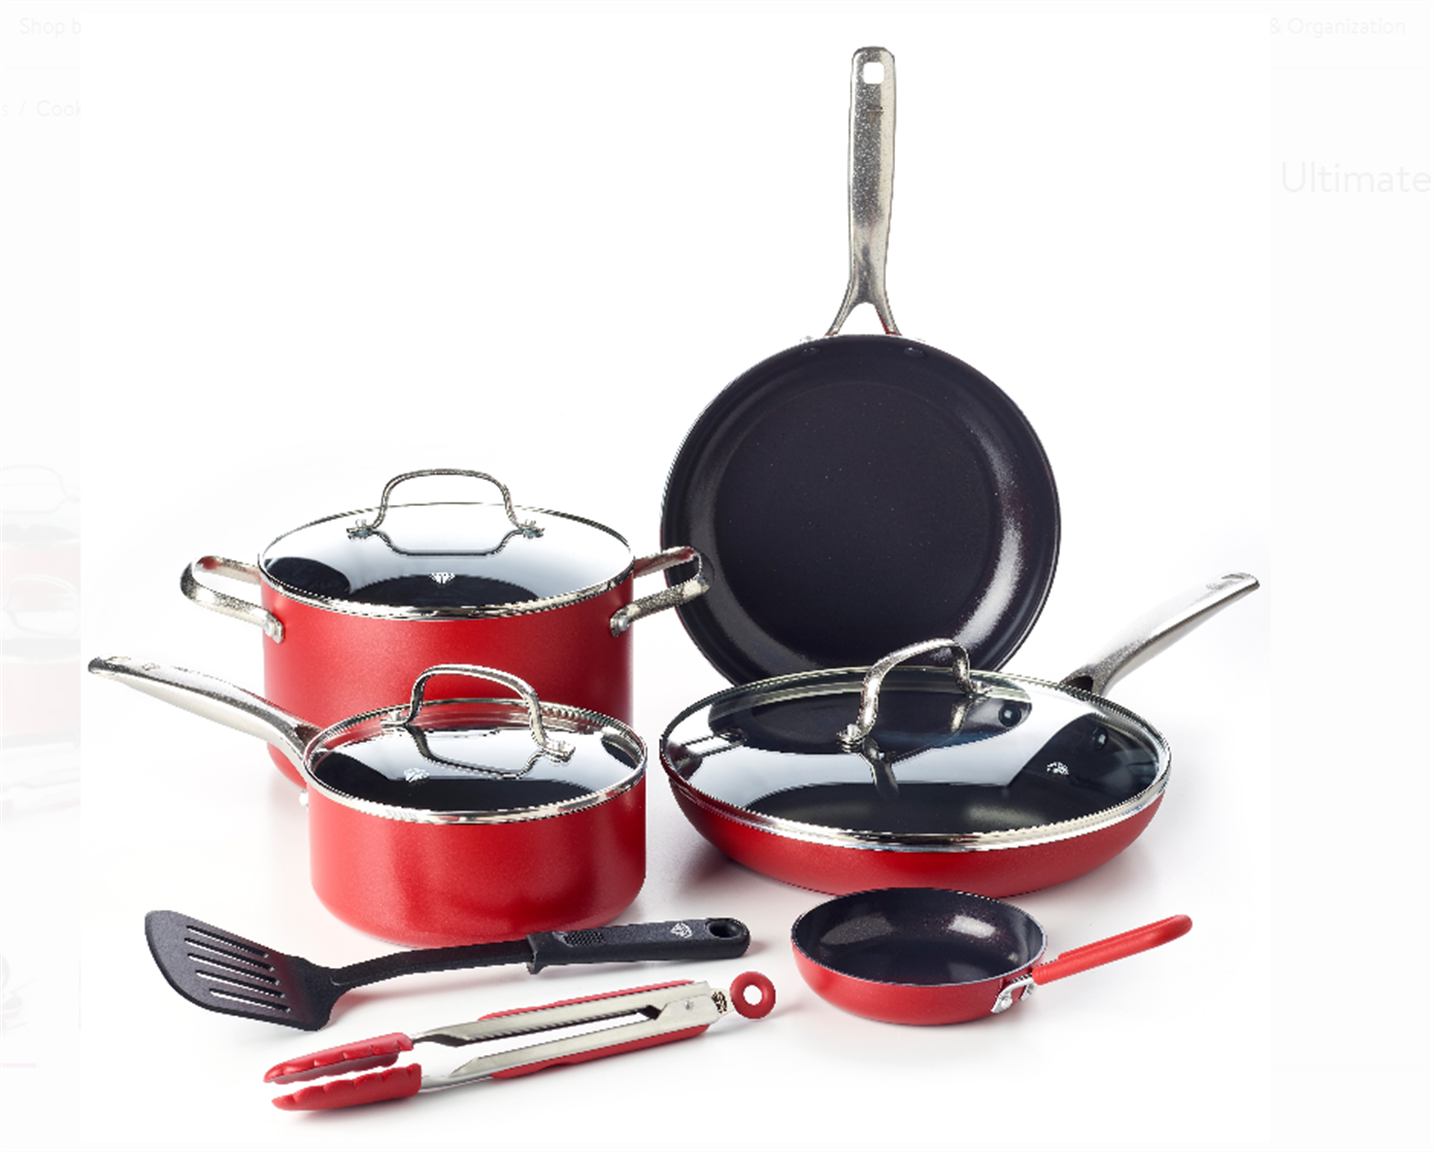 Blue Diamond Ceramic Non-Stick Ultimate Value Cookware Set (Red) Only $42.99, Reg $129.99 + Free Shipping!